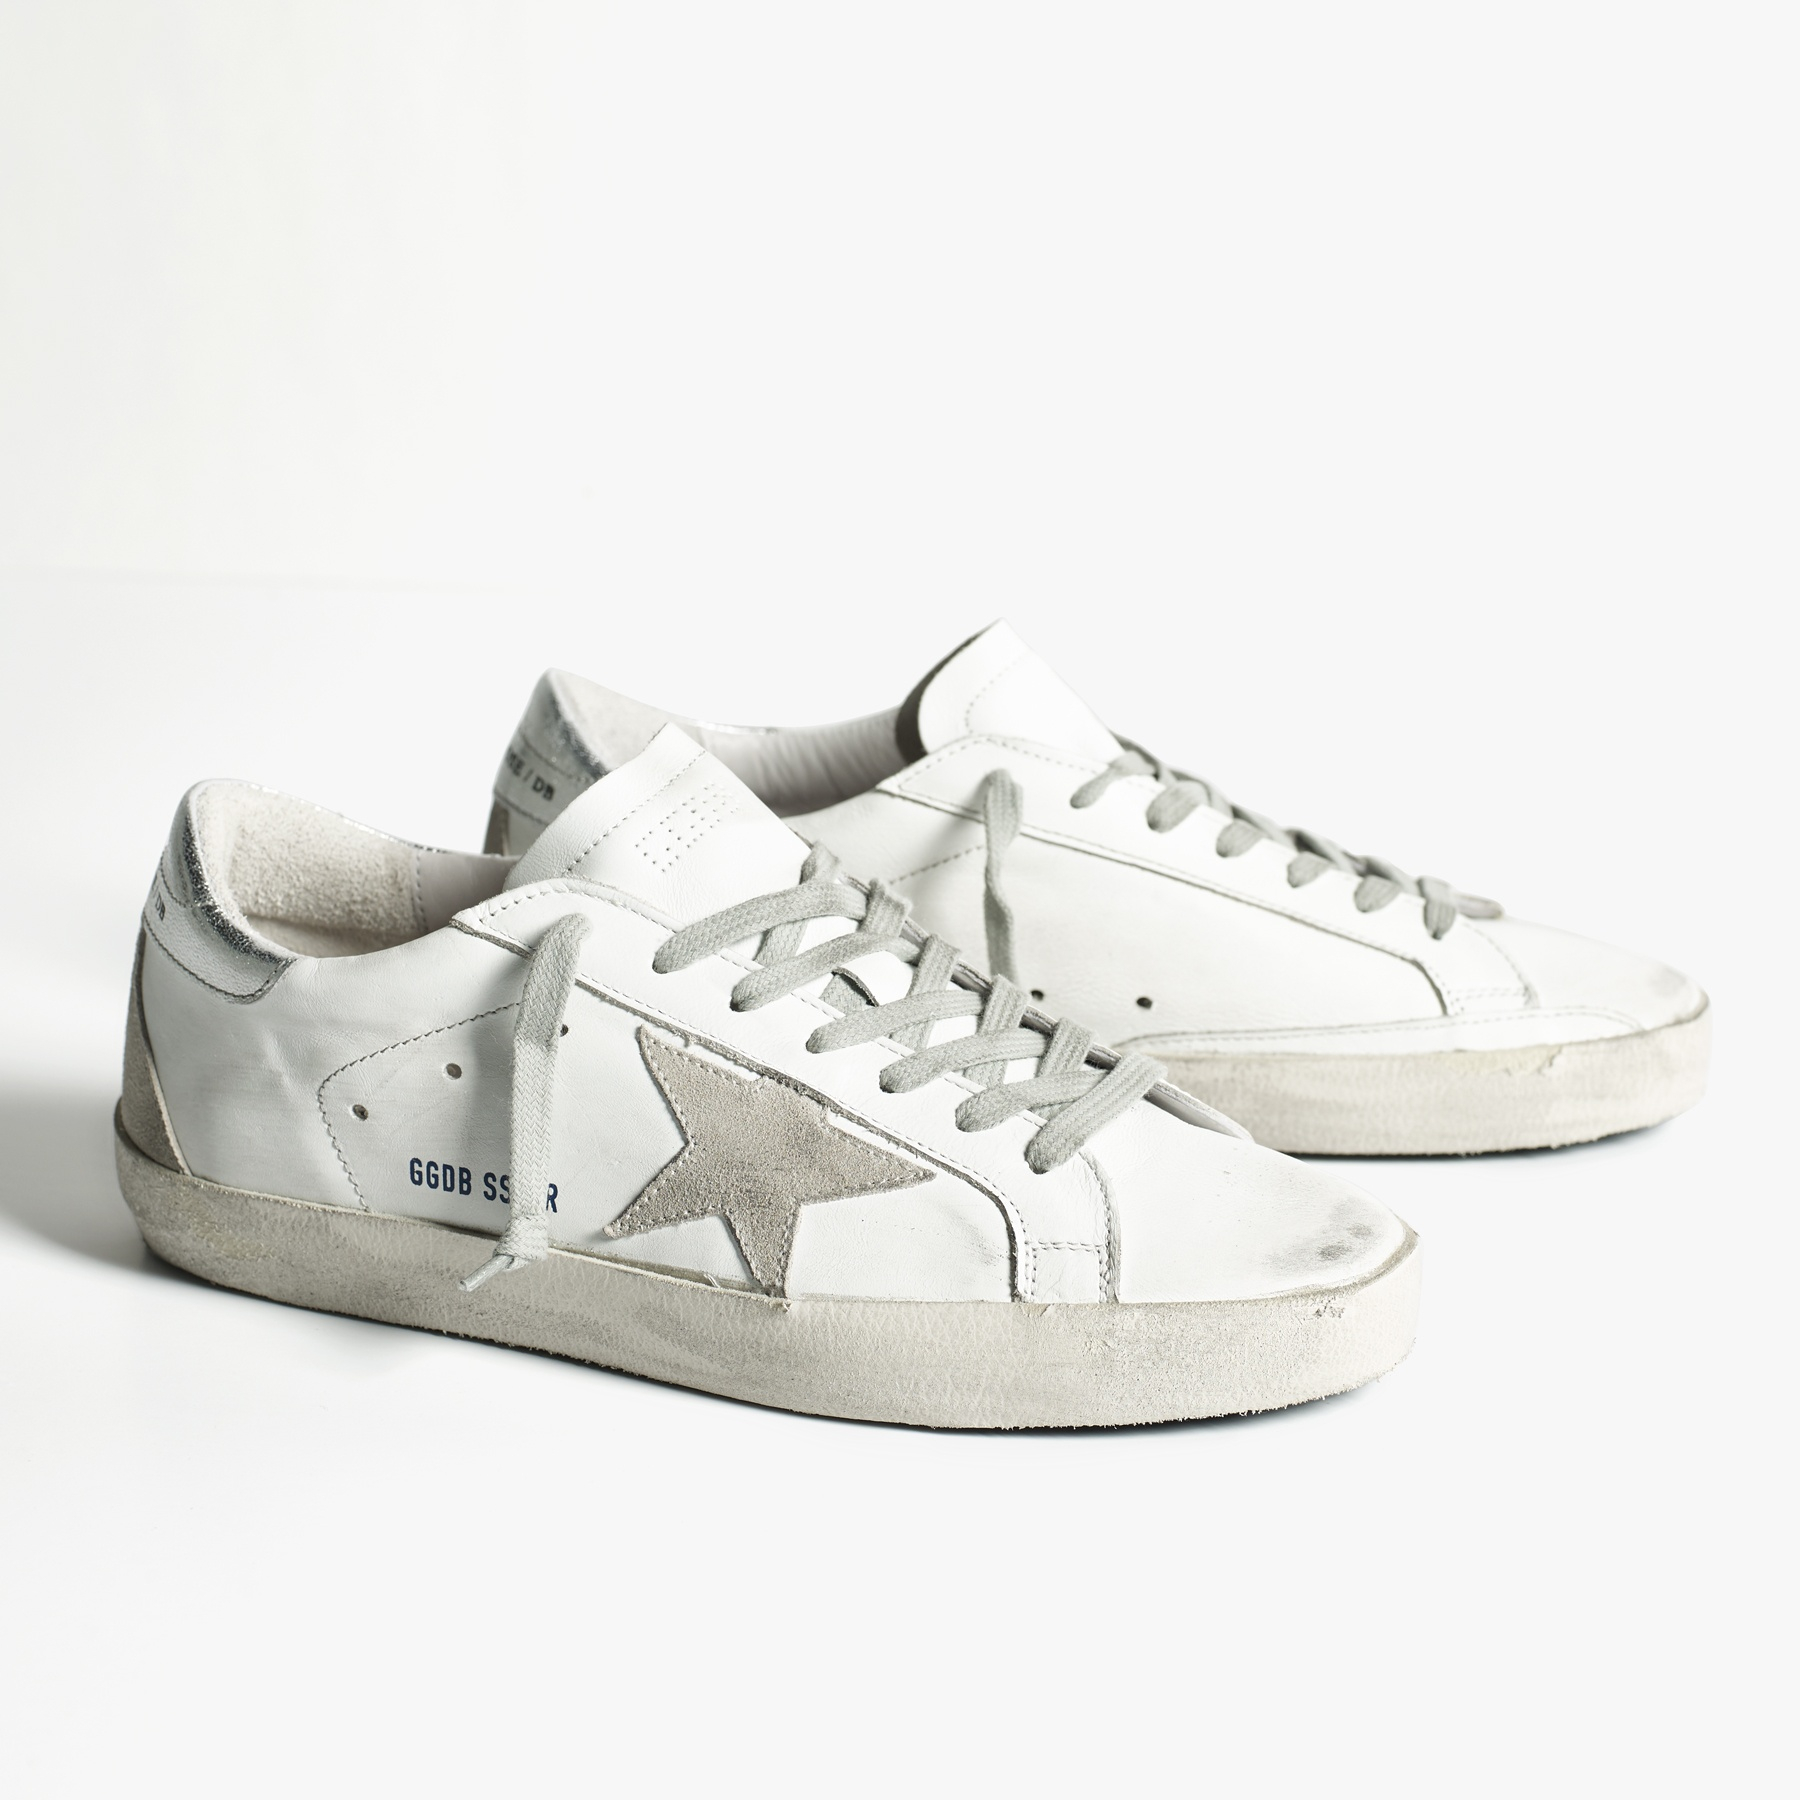 golden goose sneakers gallery ghzhikd